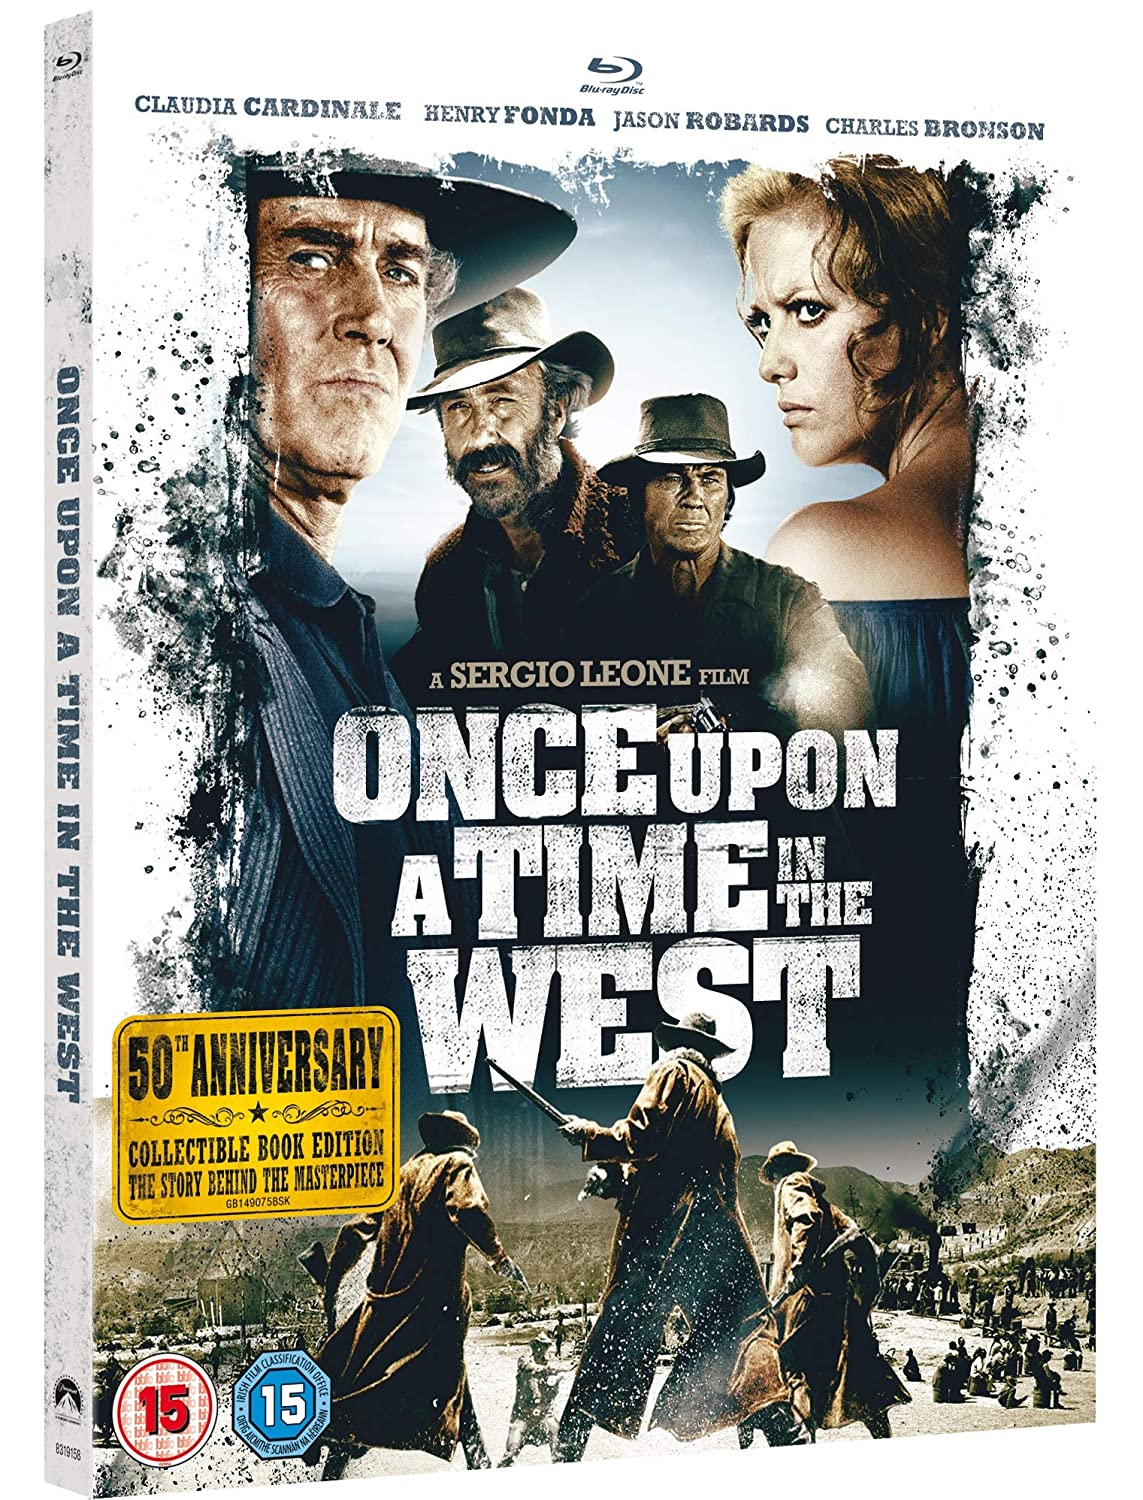 Once Upon A Time In The West 50Th Anniversary Edition Edizione: Regno Unito Italia Blu-ray: Amazon.es: Claudia Cardinale, Henry Fonda, Jason Robards, Charles Bronson, Gabriele Ferzetti, Paolo Stoppa, Woody Strode, Jack Elam,